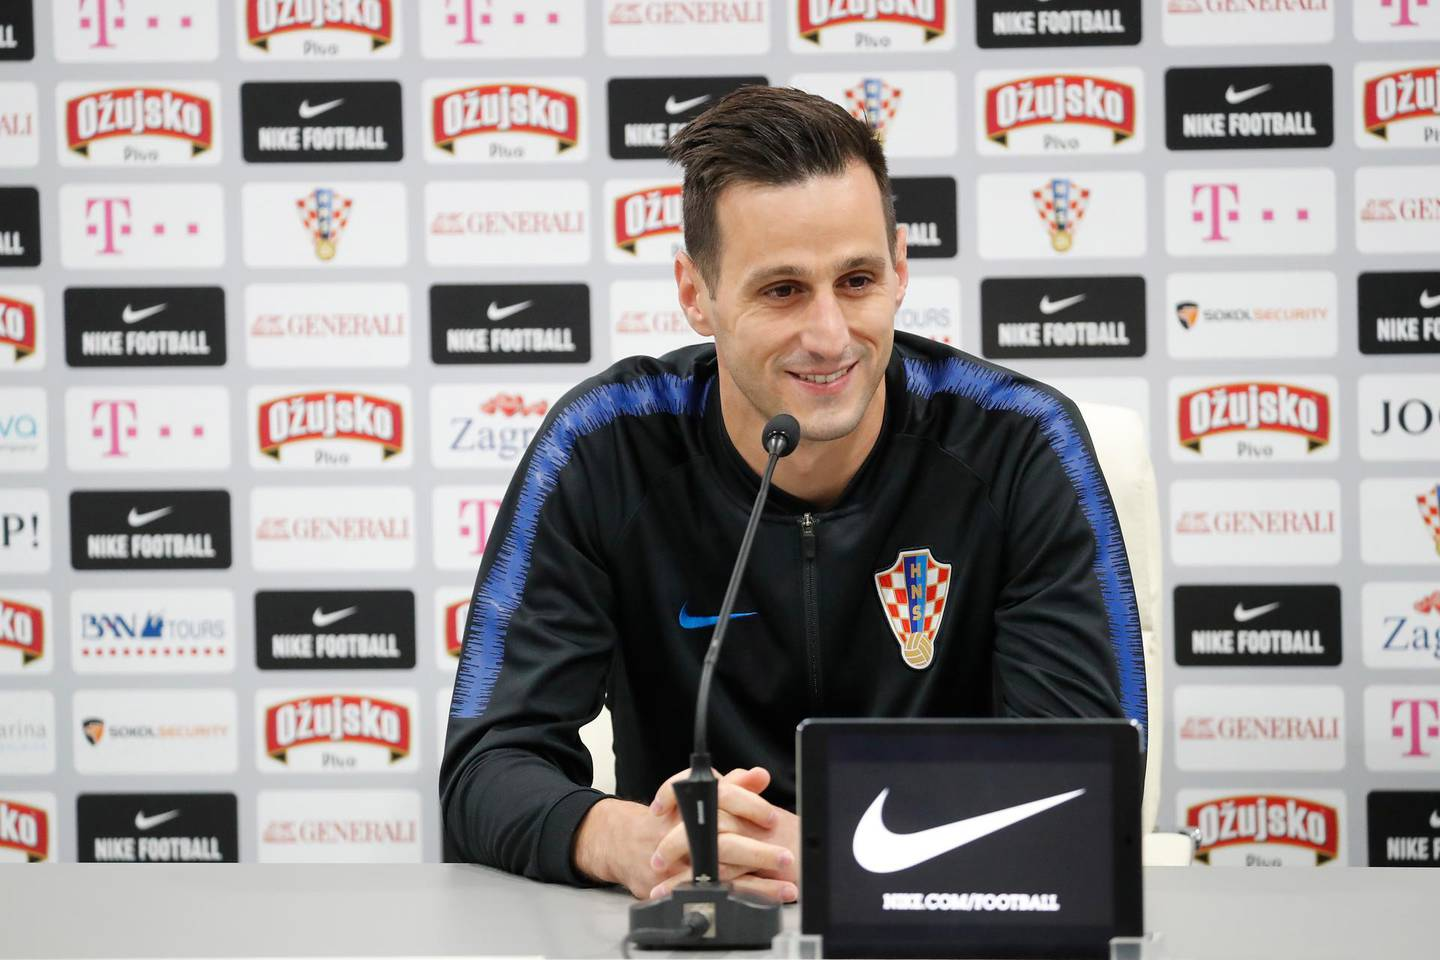 epa06805049 Croatia's Nikola Kalinic attends a press conference of the Croatian national soccer team at the Roschino Arena, outside St. Petersburg, Russia, 13 June 2018. Croatia prepares for the FIFA World Cup 2018, that will take place in Russia from 14 June to 15 July 2018.  EPA/ANATOLY MALTSEV